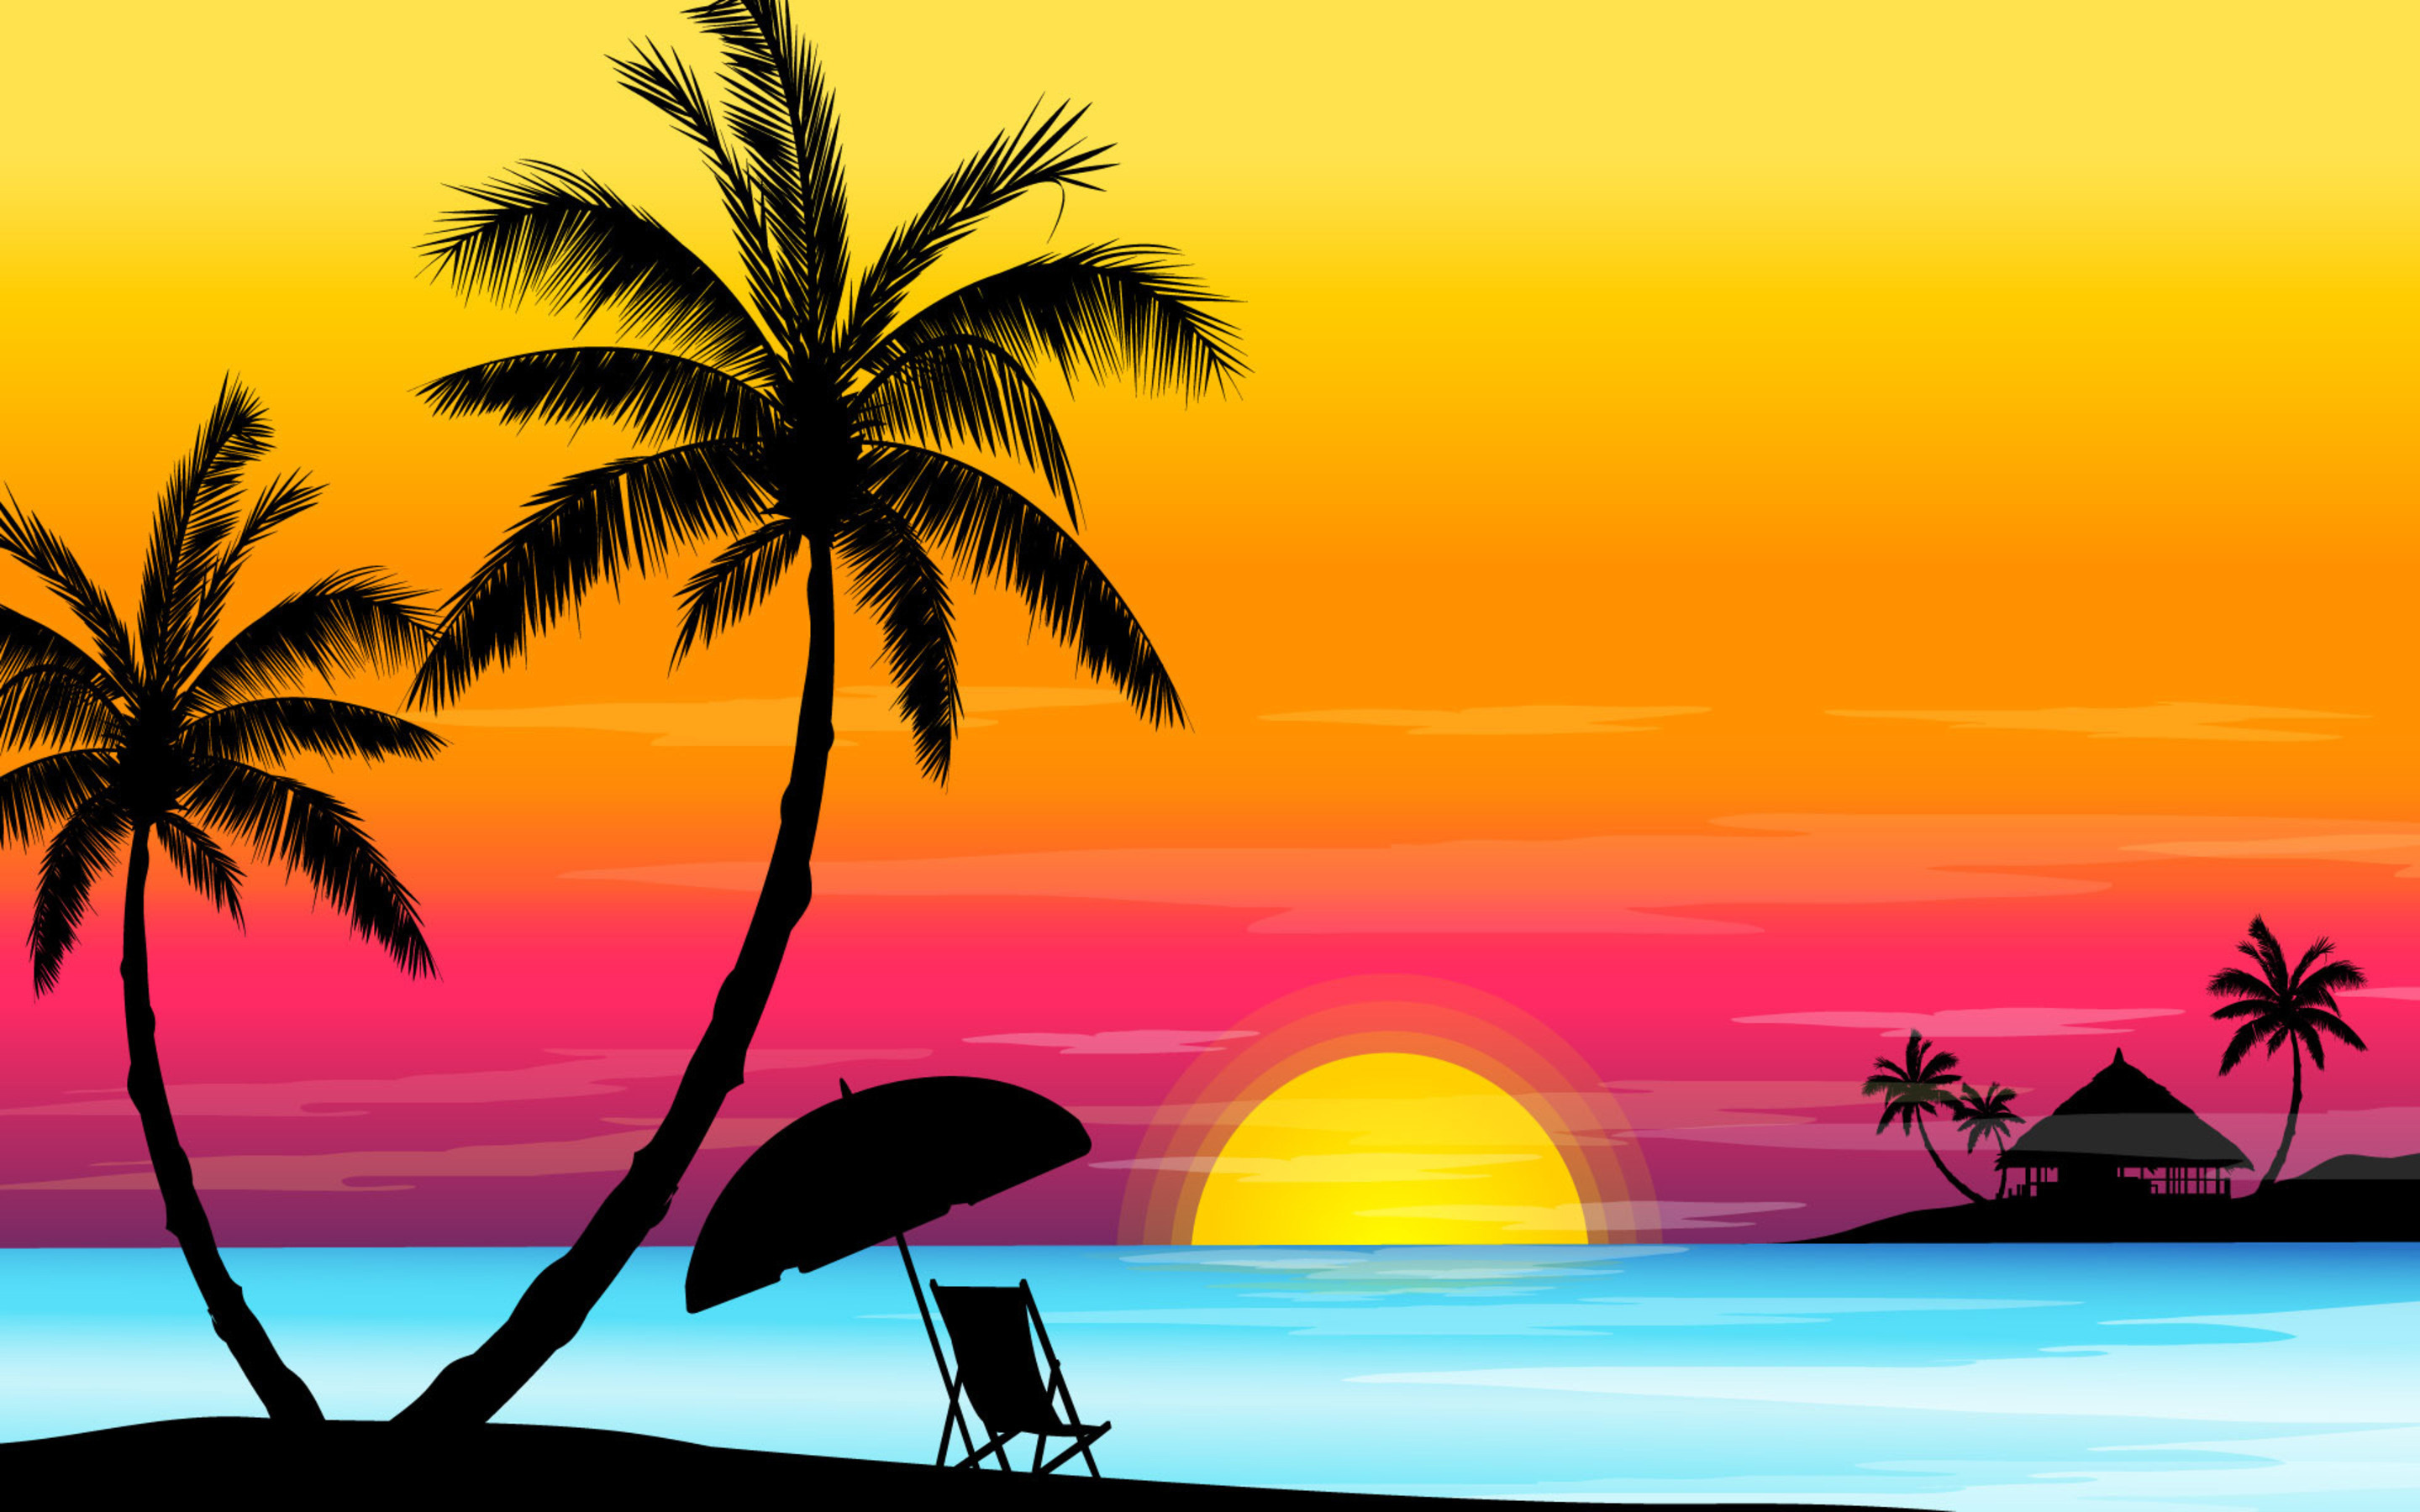 Beach Sunset Wallpaper High Resolution